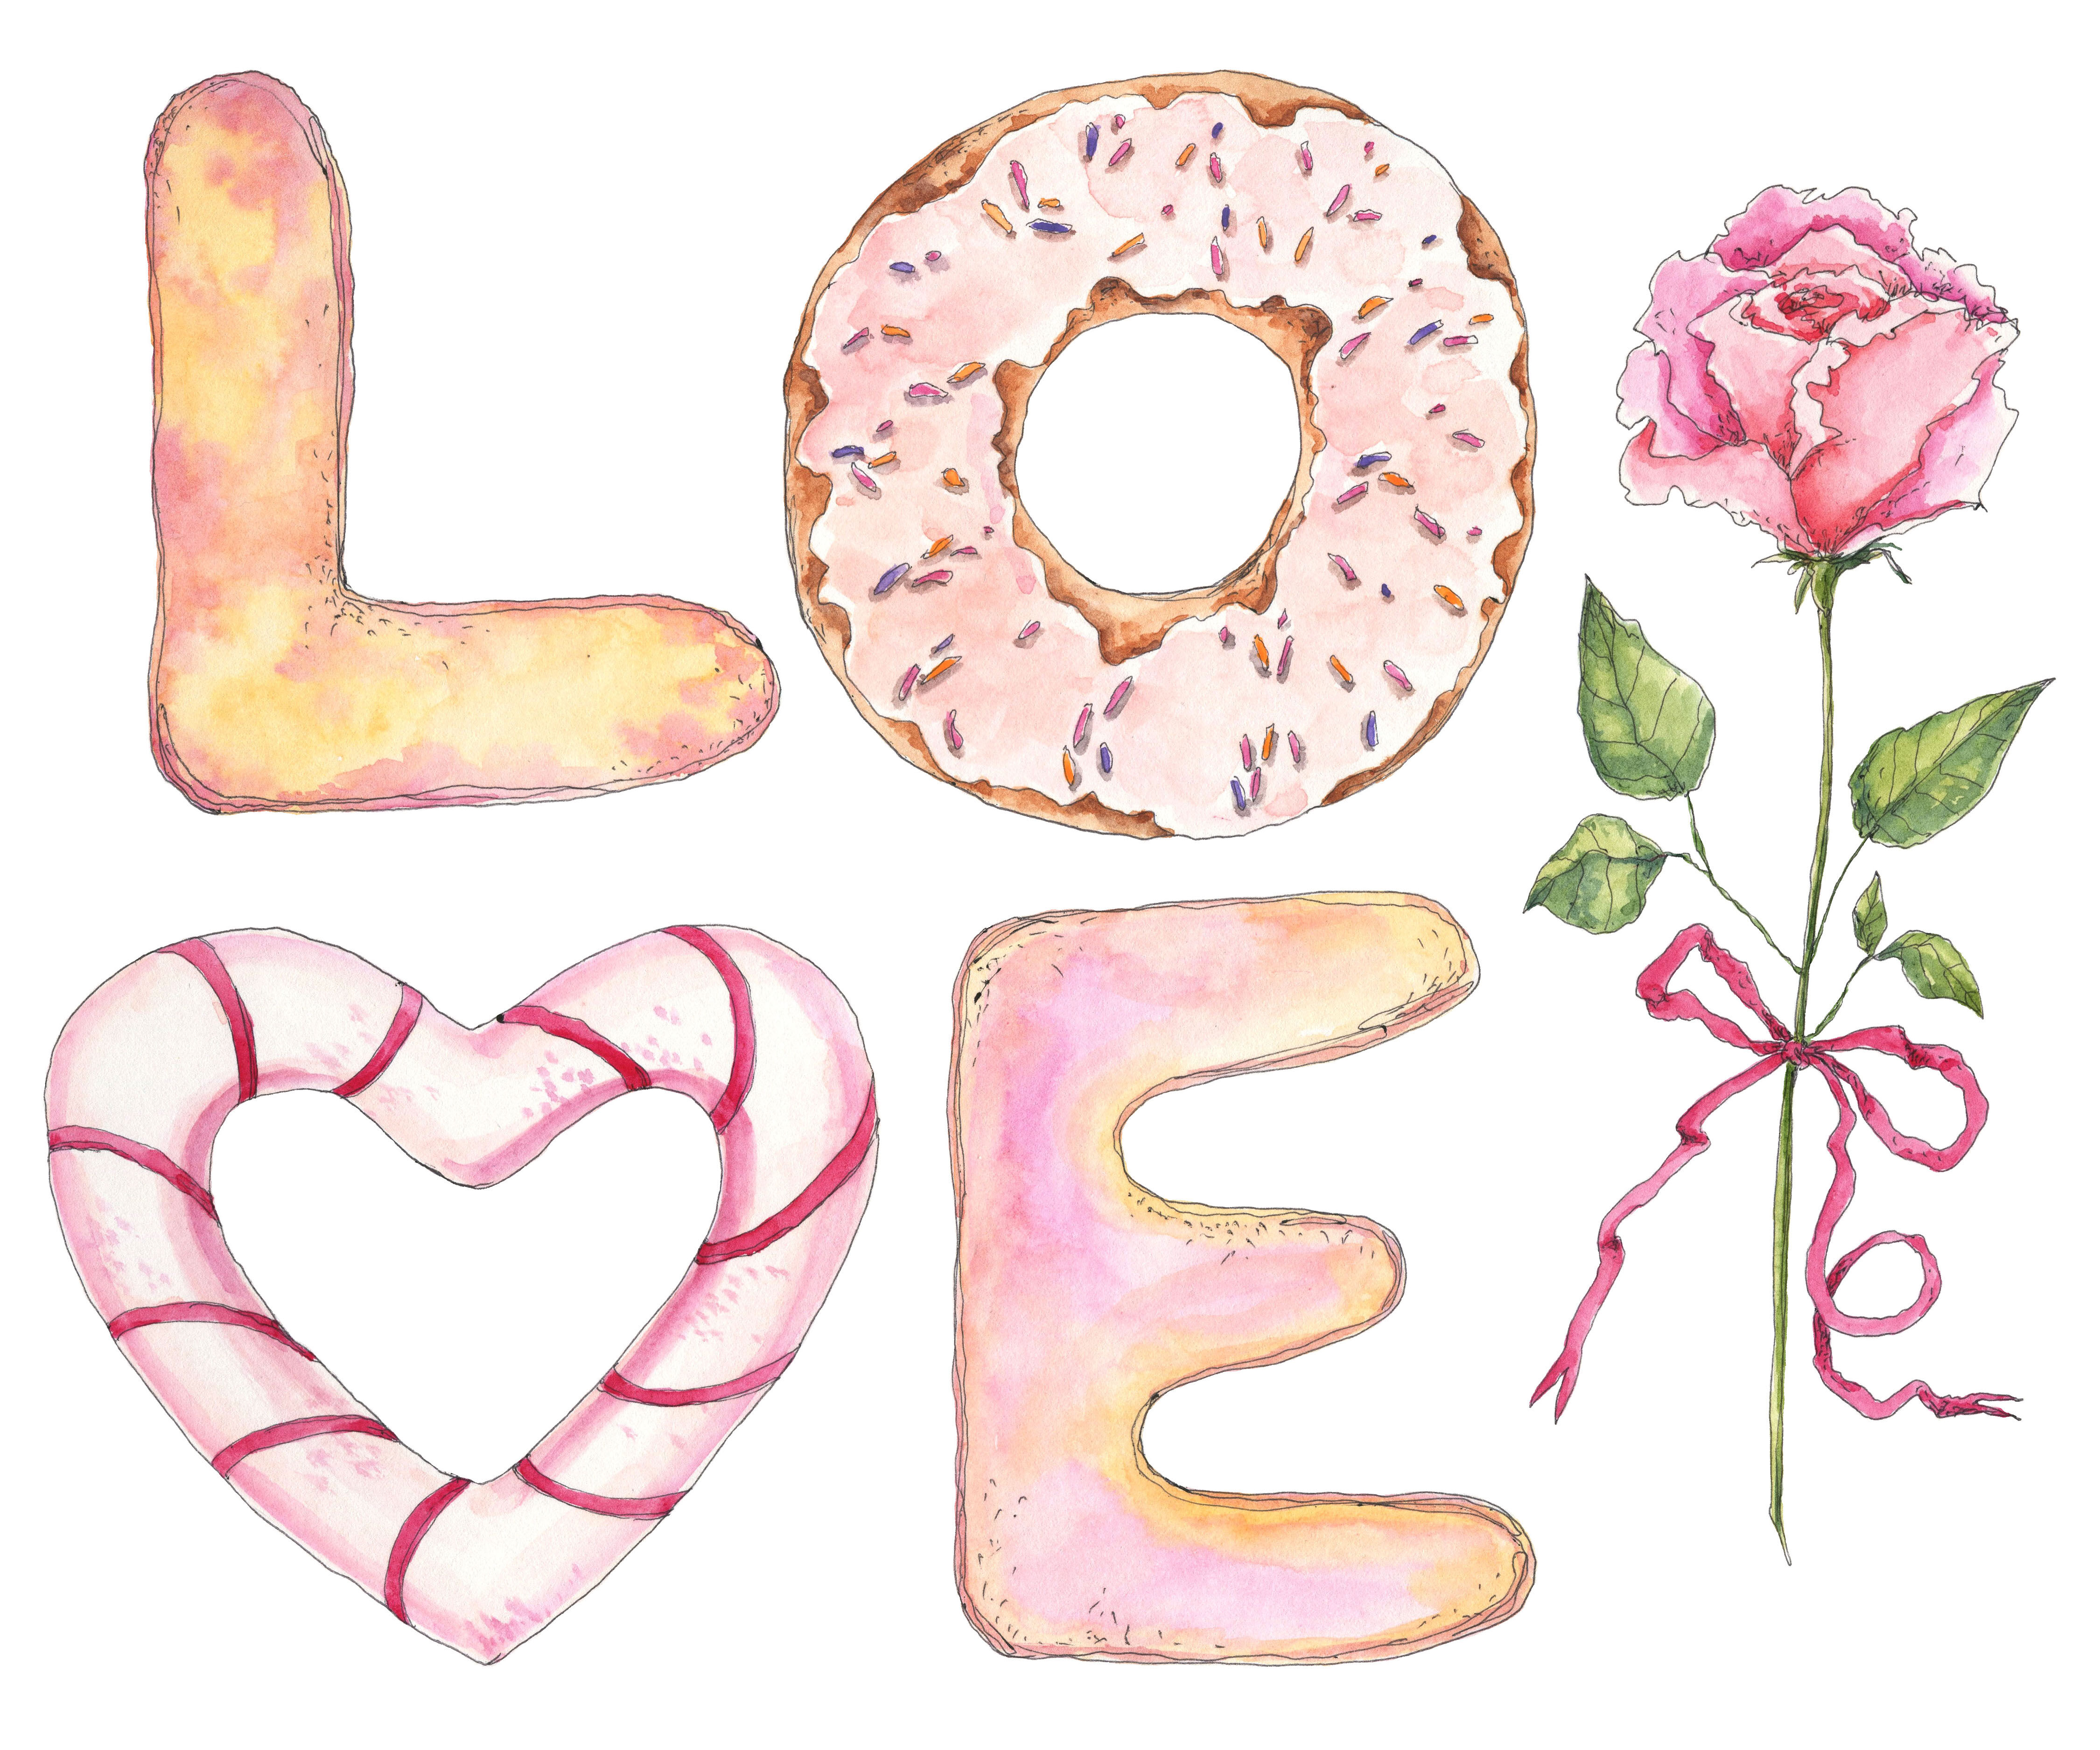 Word Letters Love With A Rose In Watercolor Sketching Style By